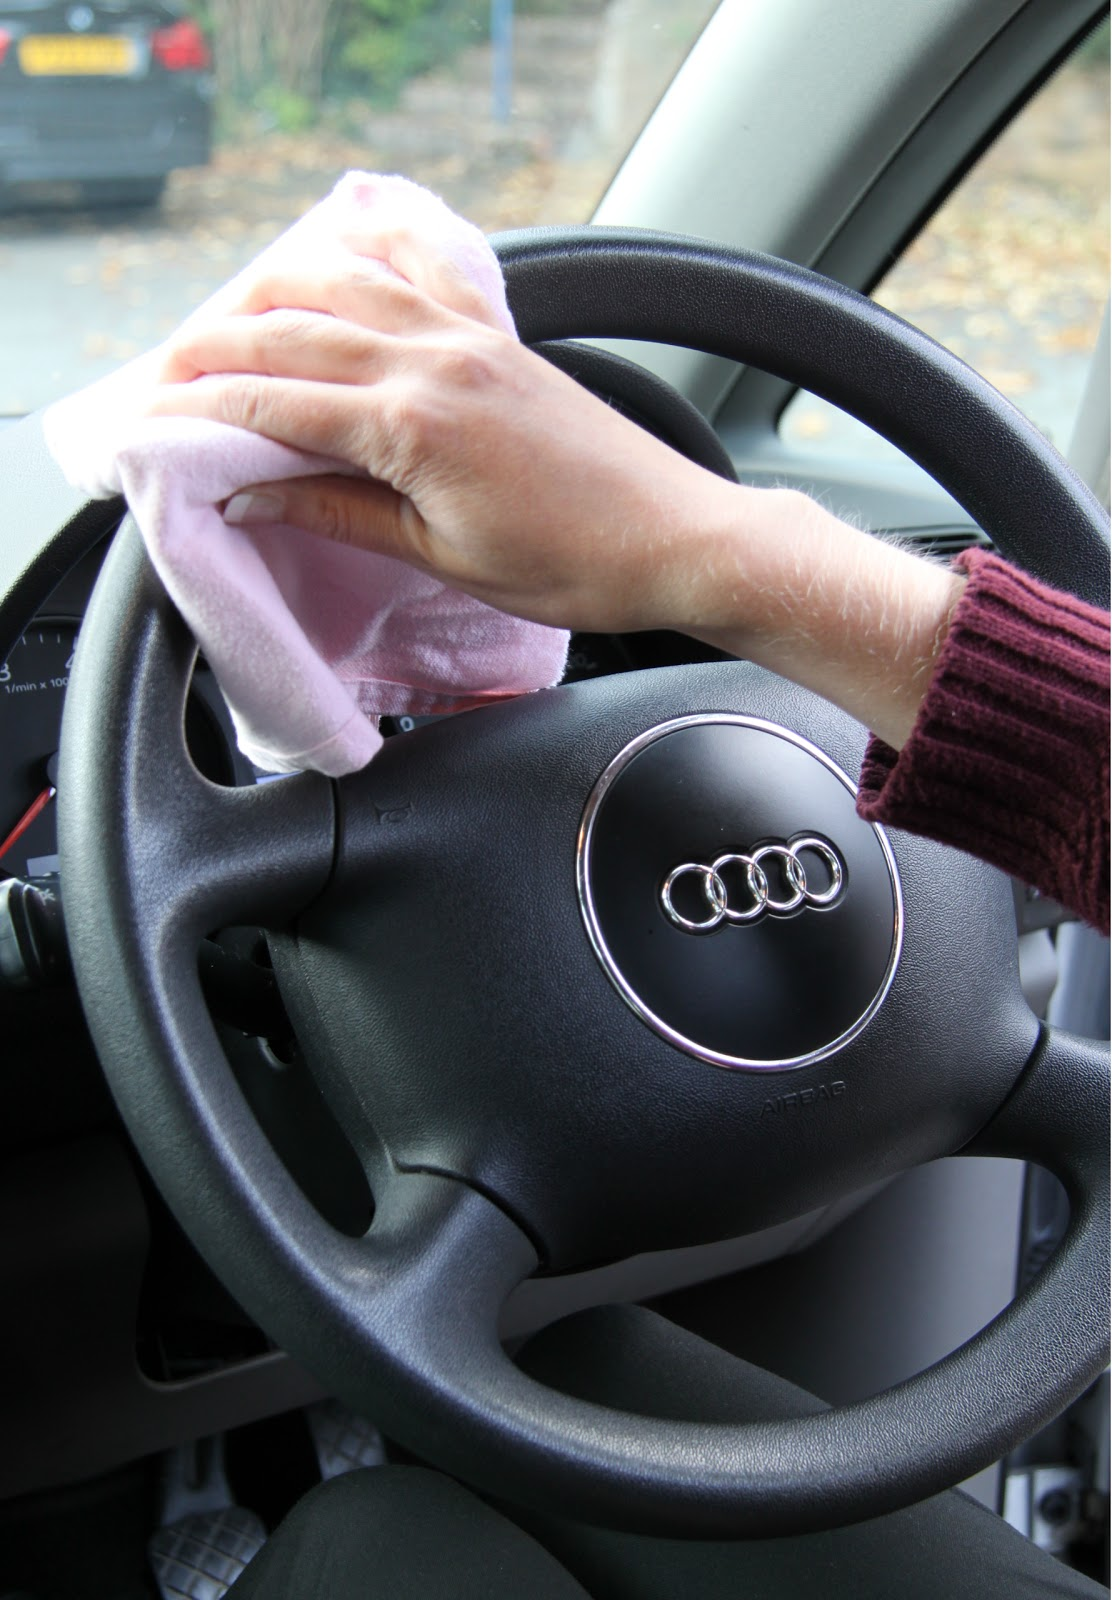 Dri pak blog keep your car interior clean and fresh - Cleaning the interior of your car ...